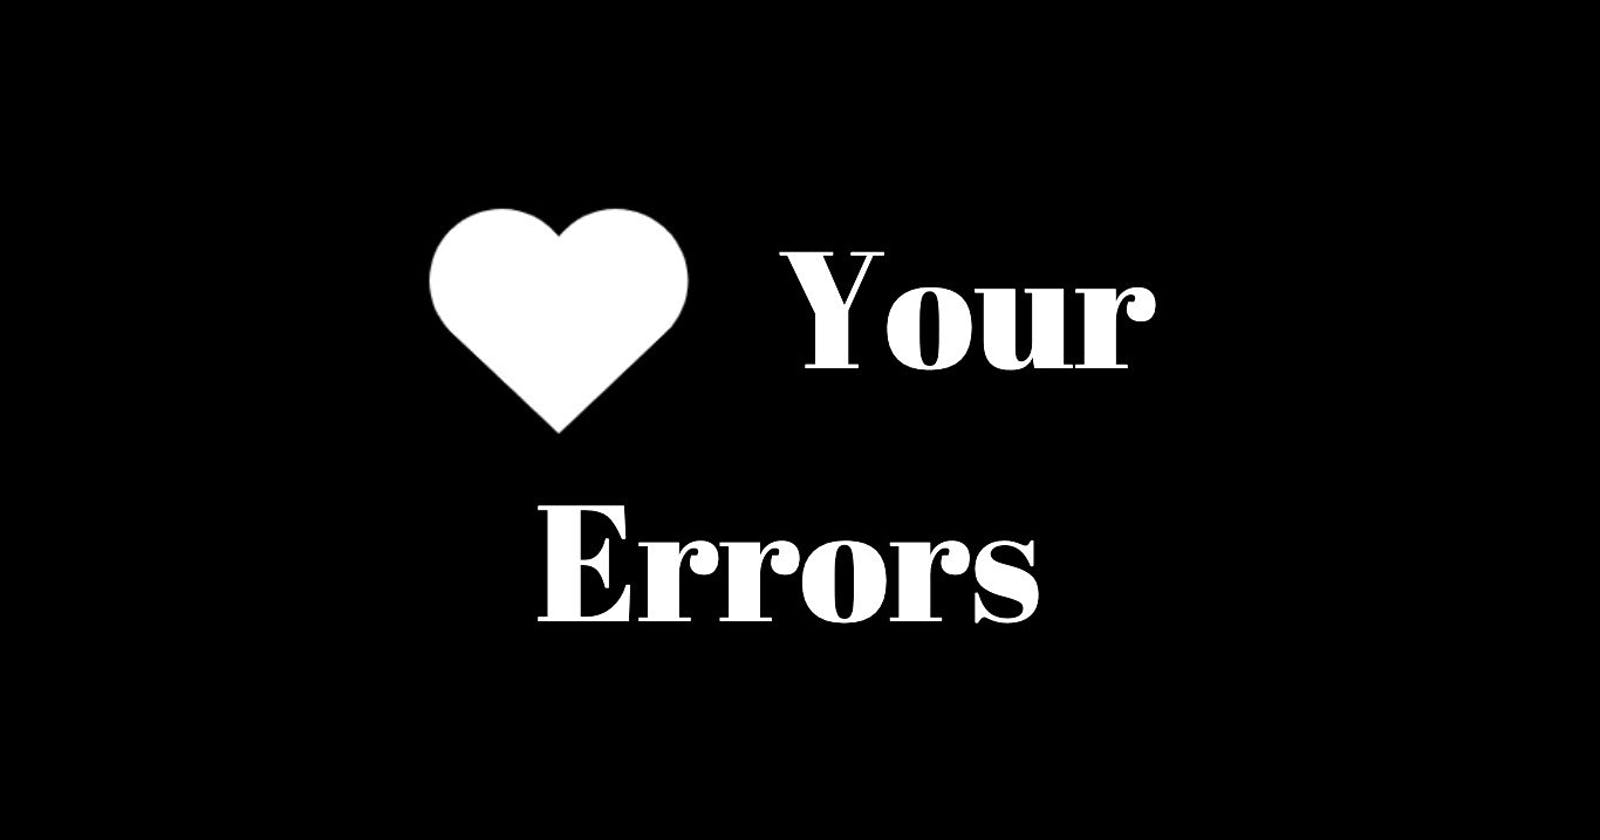 Learning to Code? Fall in Love With Errors